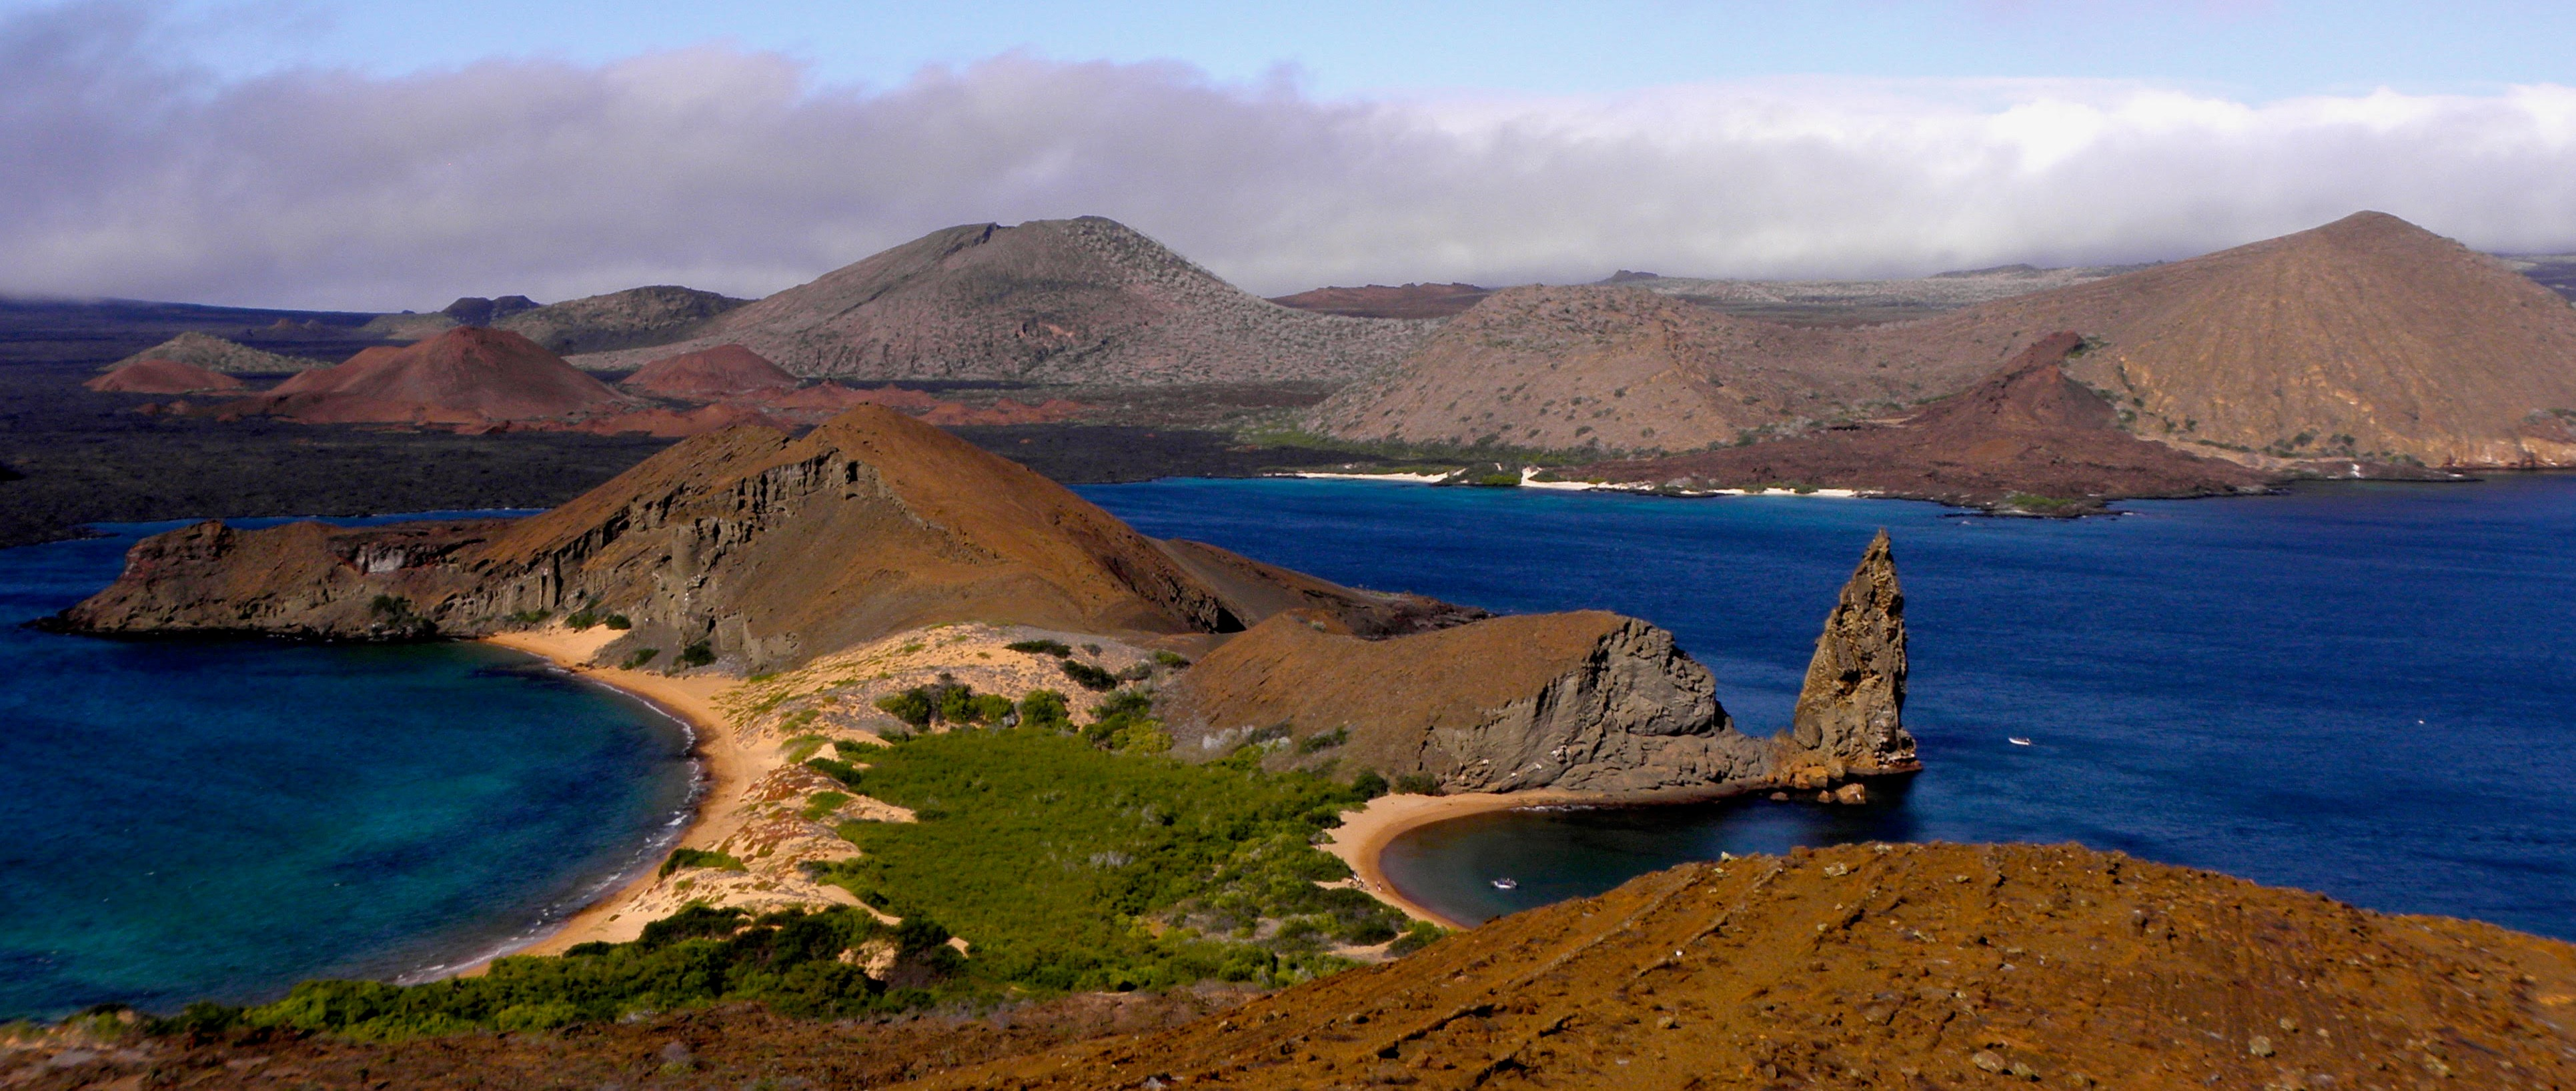 Galapagos Bay and Mountains